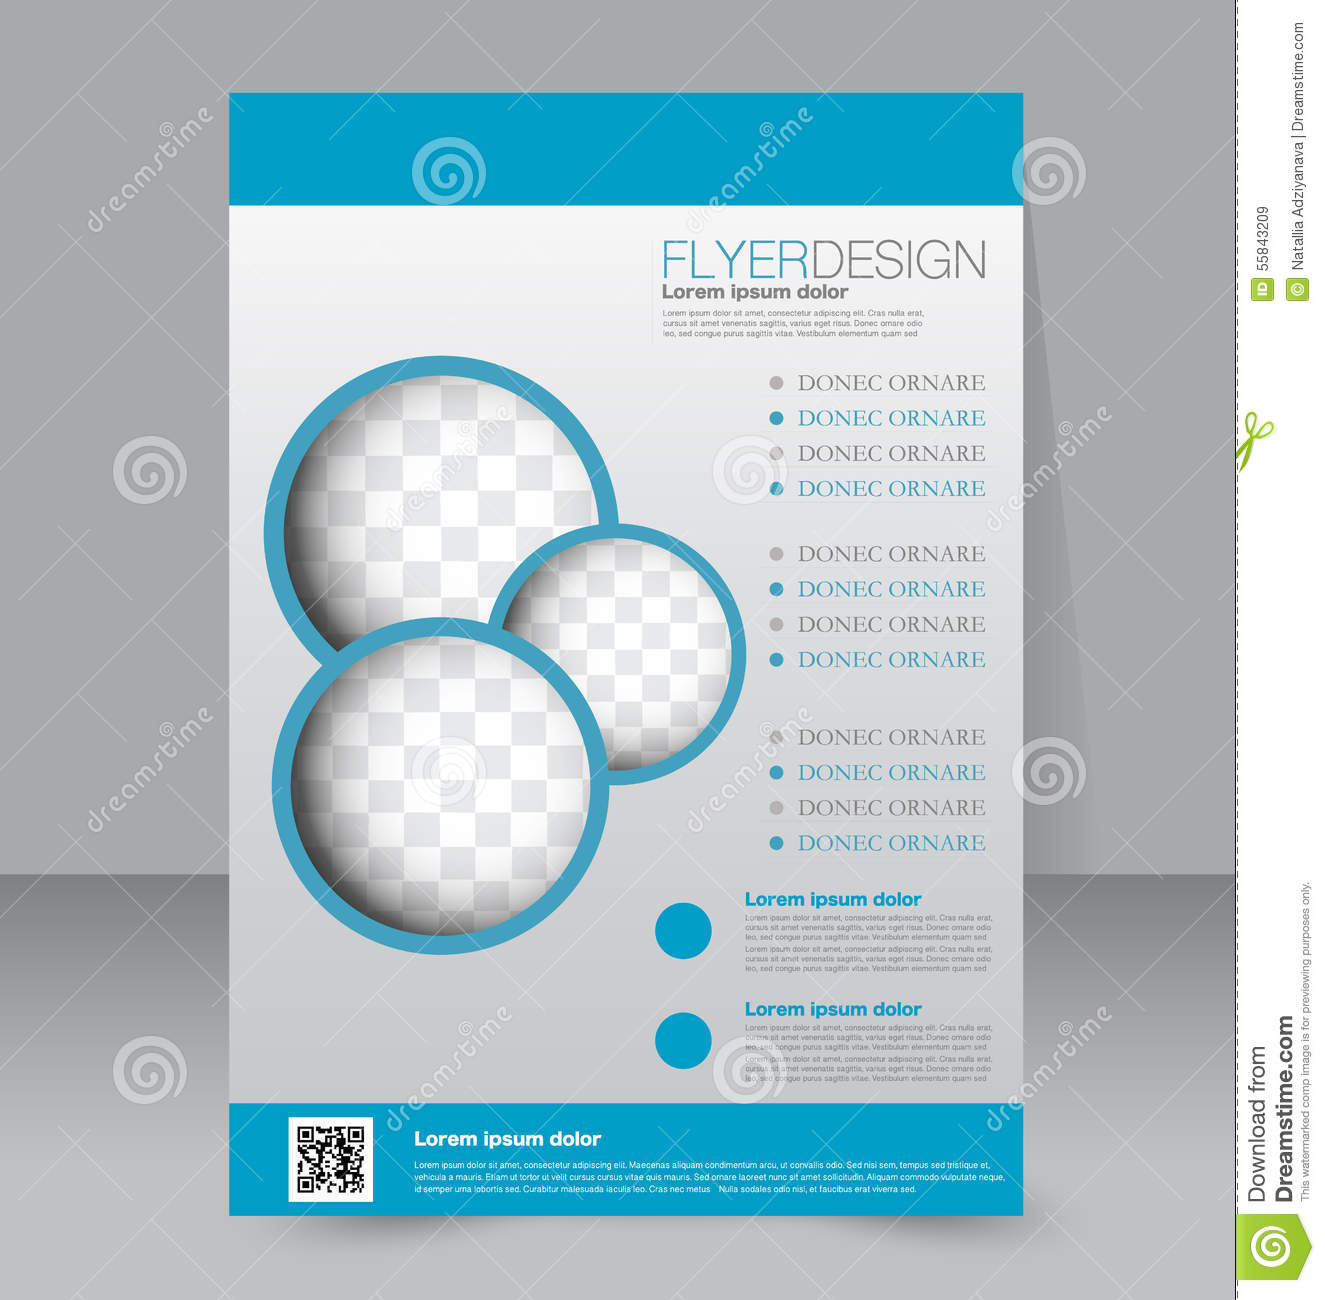 flyer template business brochure editable a4 poster stock vector flyer template business brochure editable a4 poster